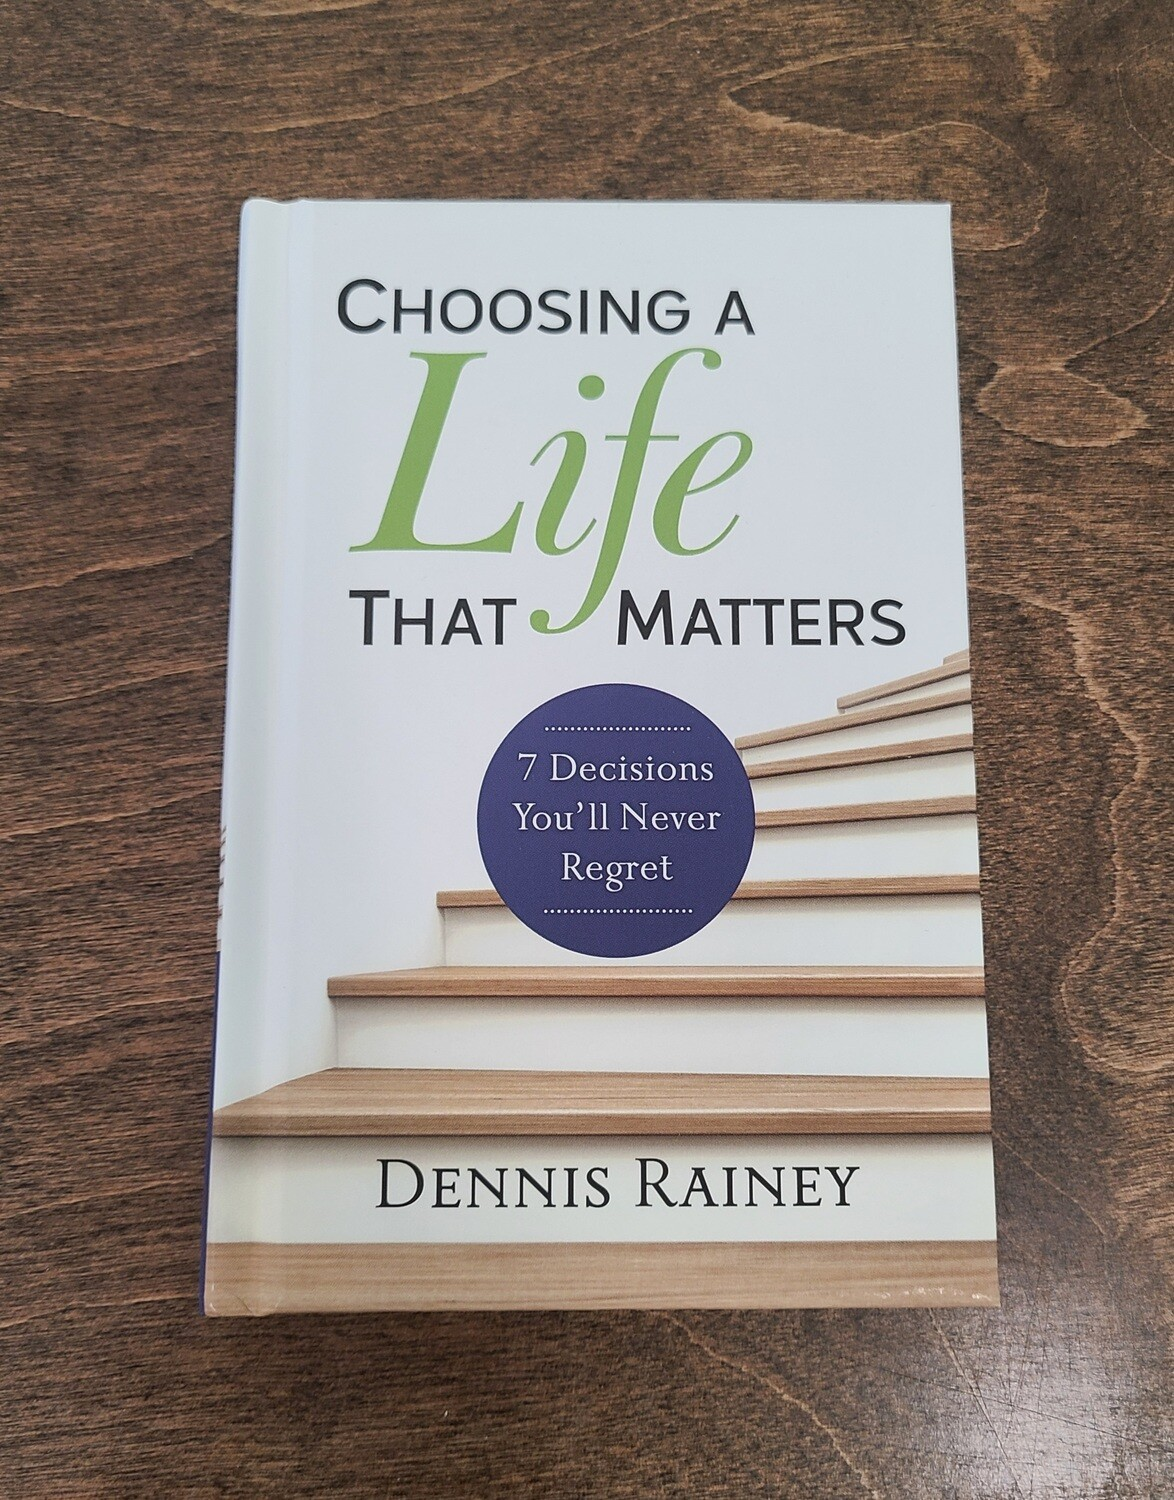 Choosing a Life that Matters by Dennis Rainey